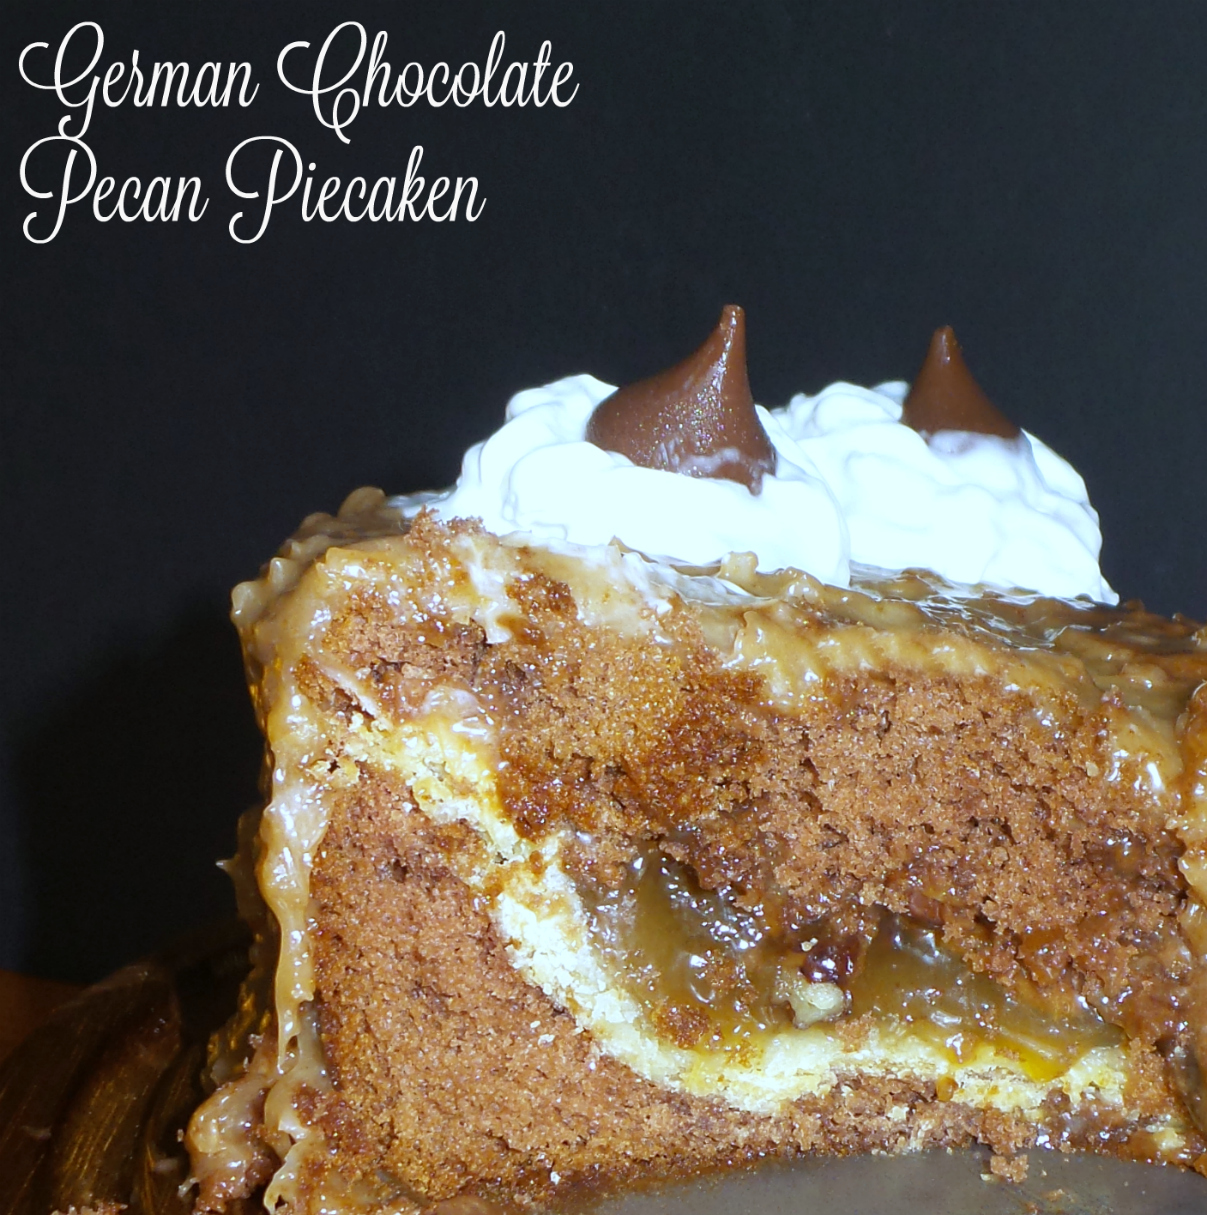 German Chocolate Pecan Piecaken - Family Fun Journal